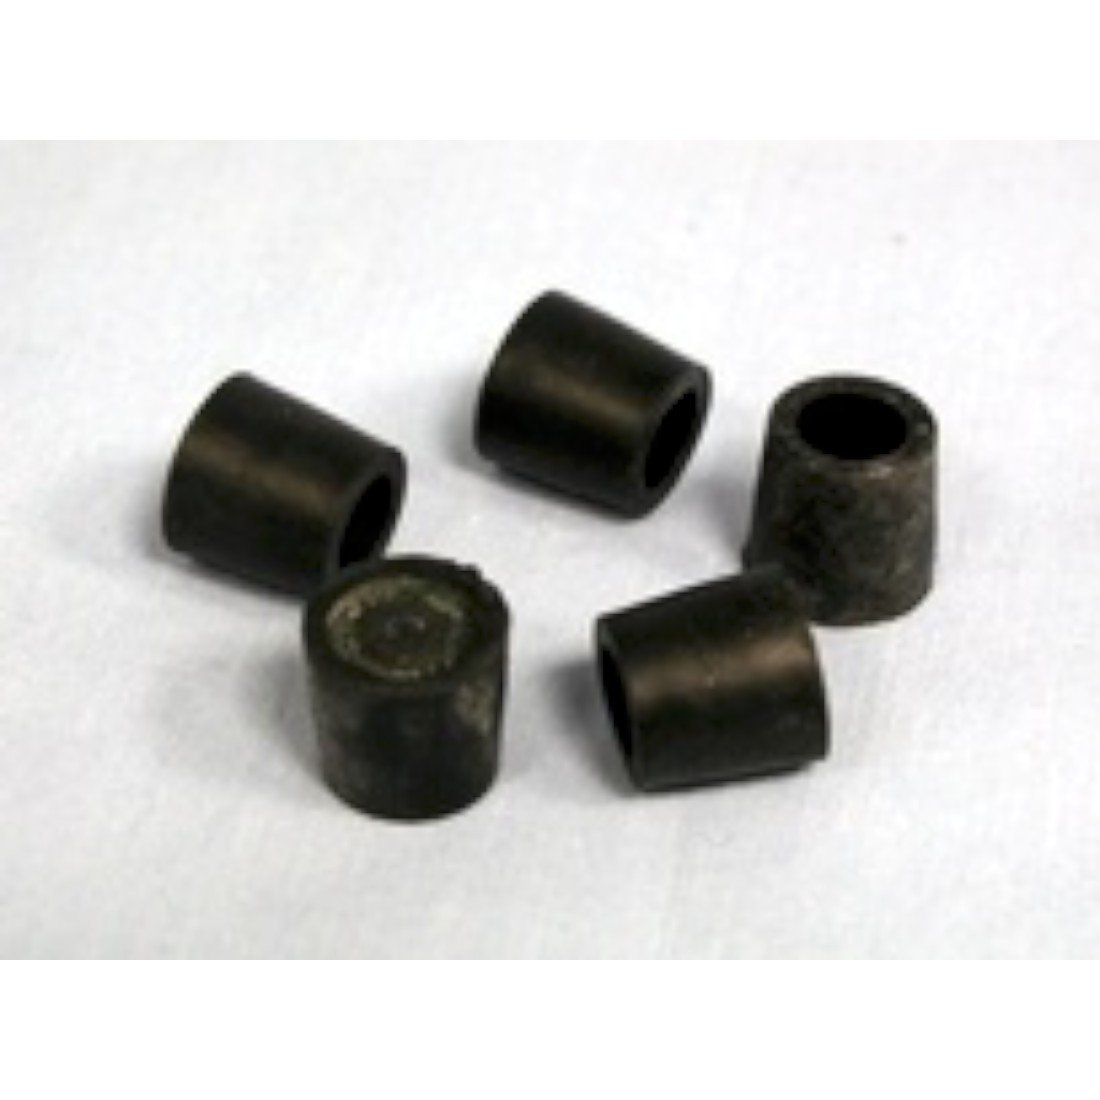 650300 KENWOOD Major replacement rubber feet Pack of 5